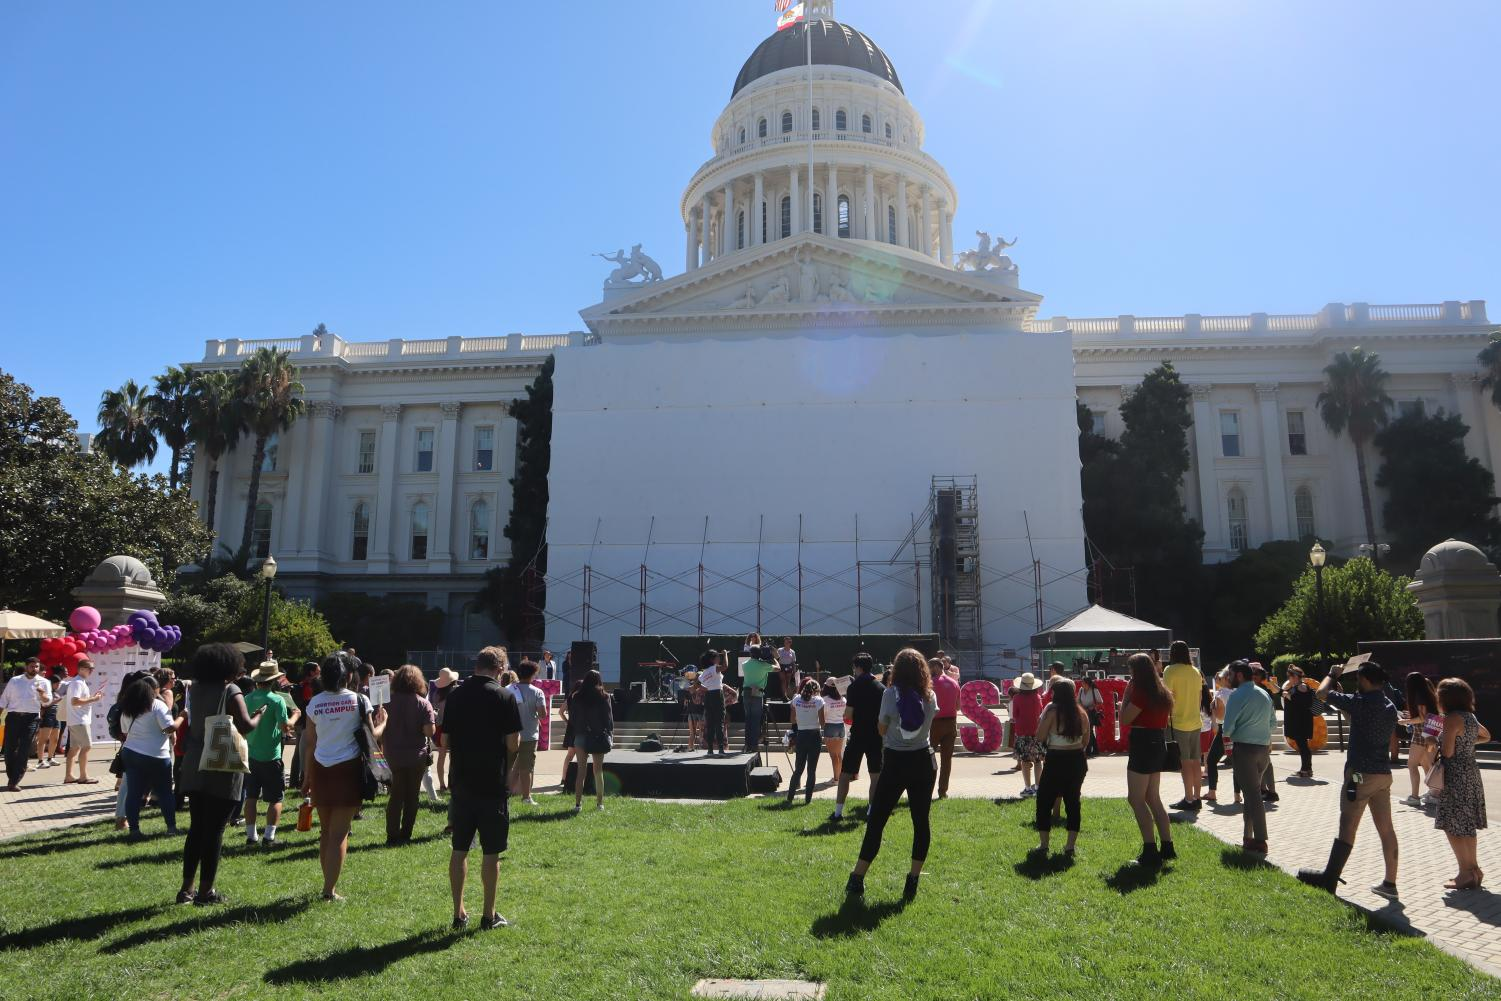 California college students and Senator Connie Leyva rallied in support of abortion care on public college campuses such as Sacramento State at the Capitol building in Sacramento Tuesday. Abortion care would be available for students at CSU and UC campuses starting in 2023 if the bill is signed.